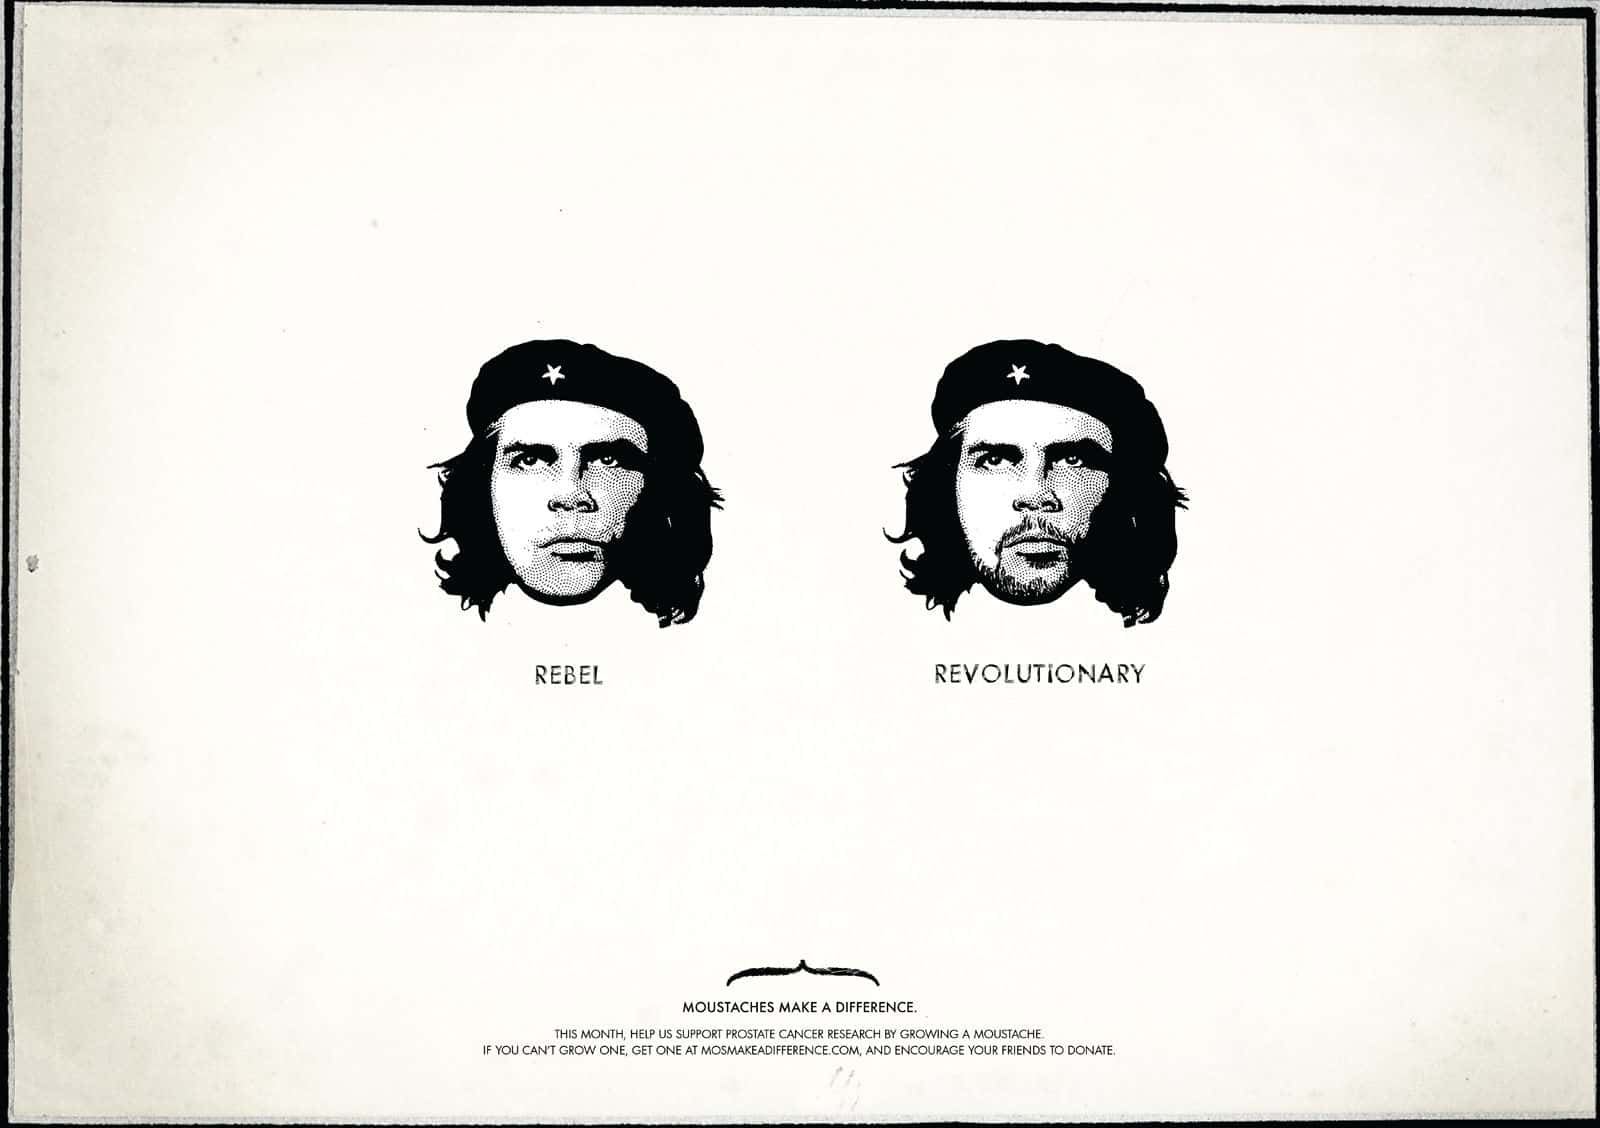 Moustaches-Make-A-Difference-Che-Guevara